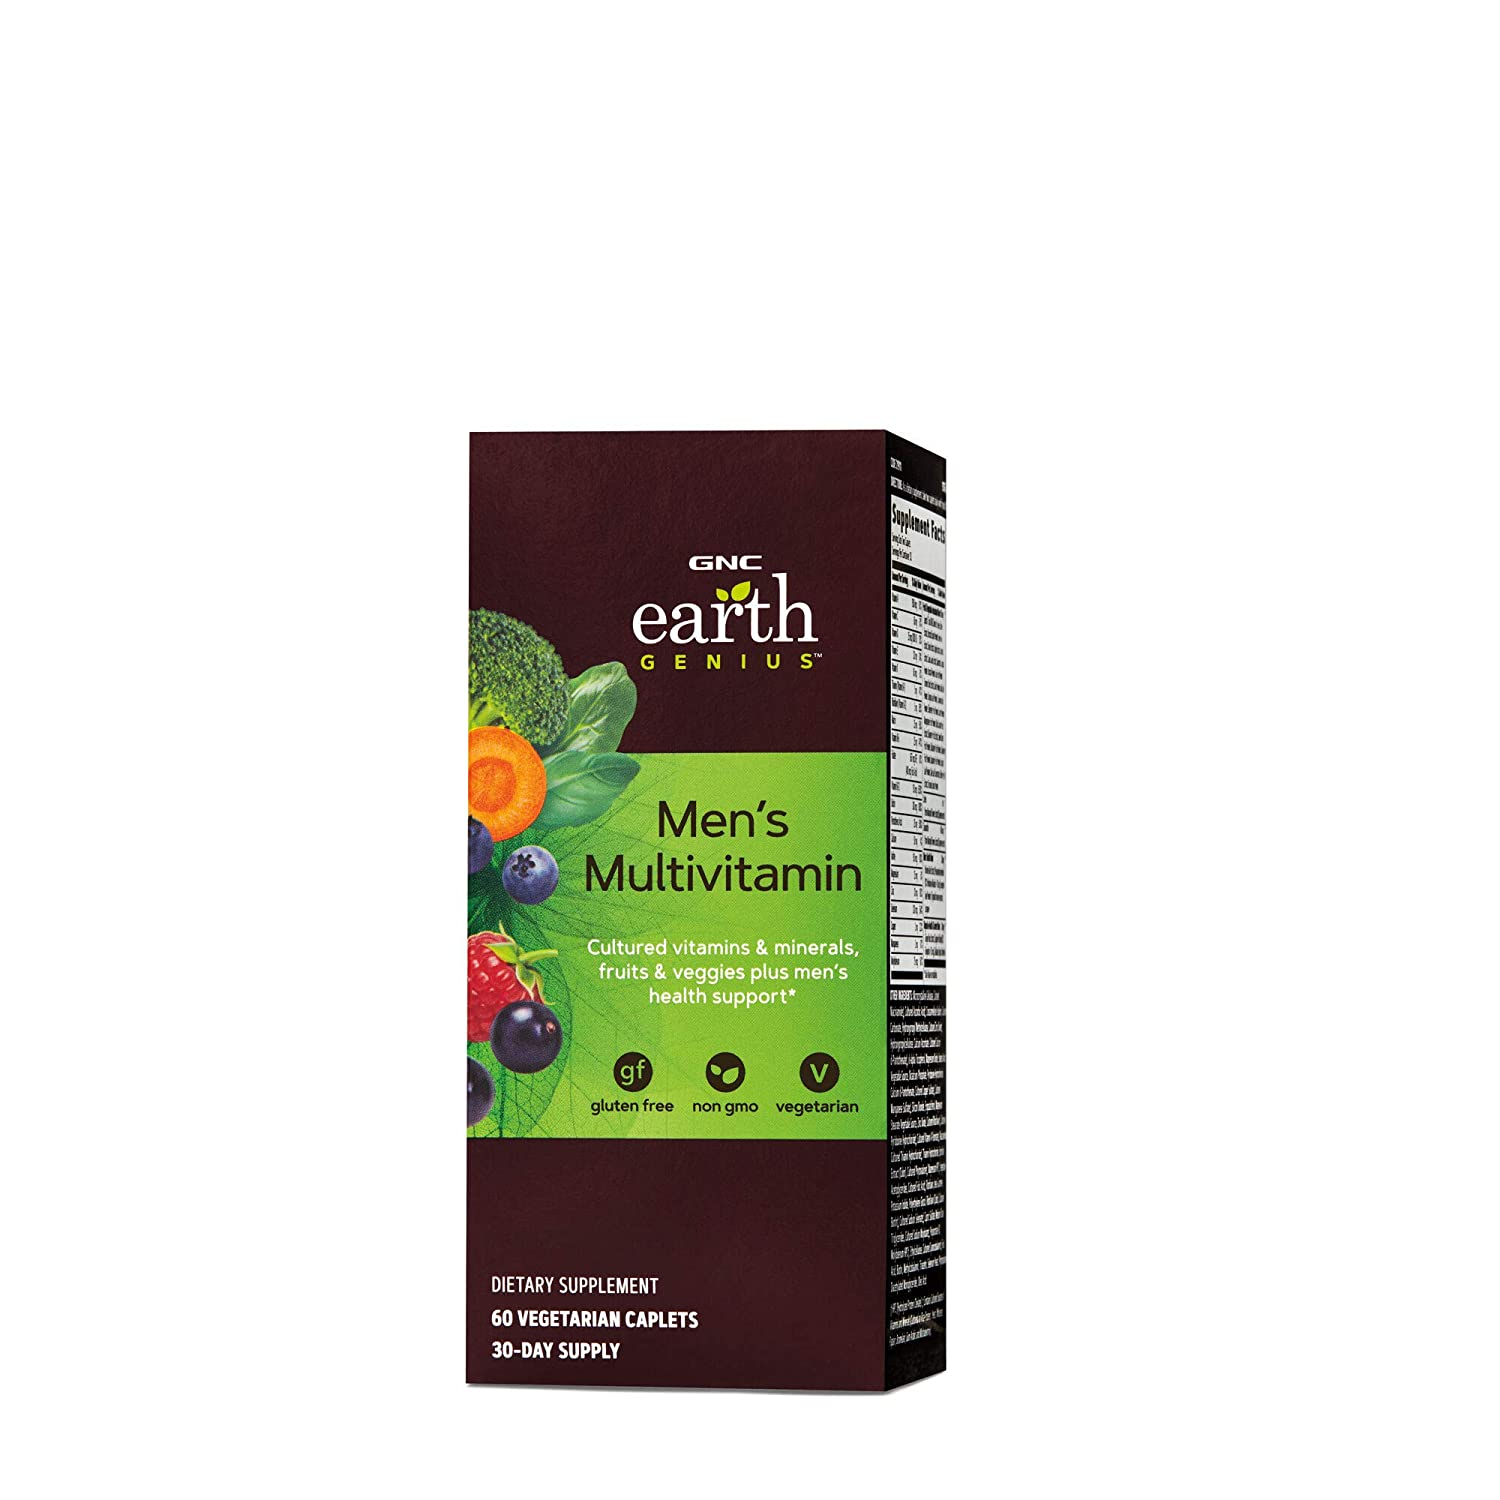 GNC Earth Genius Mens Multivitamin